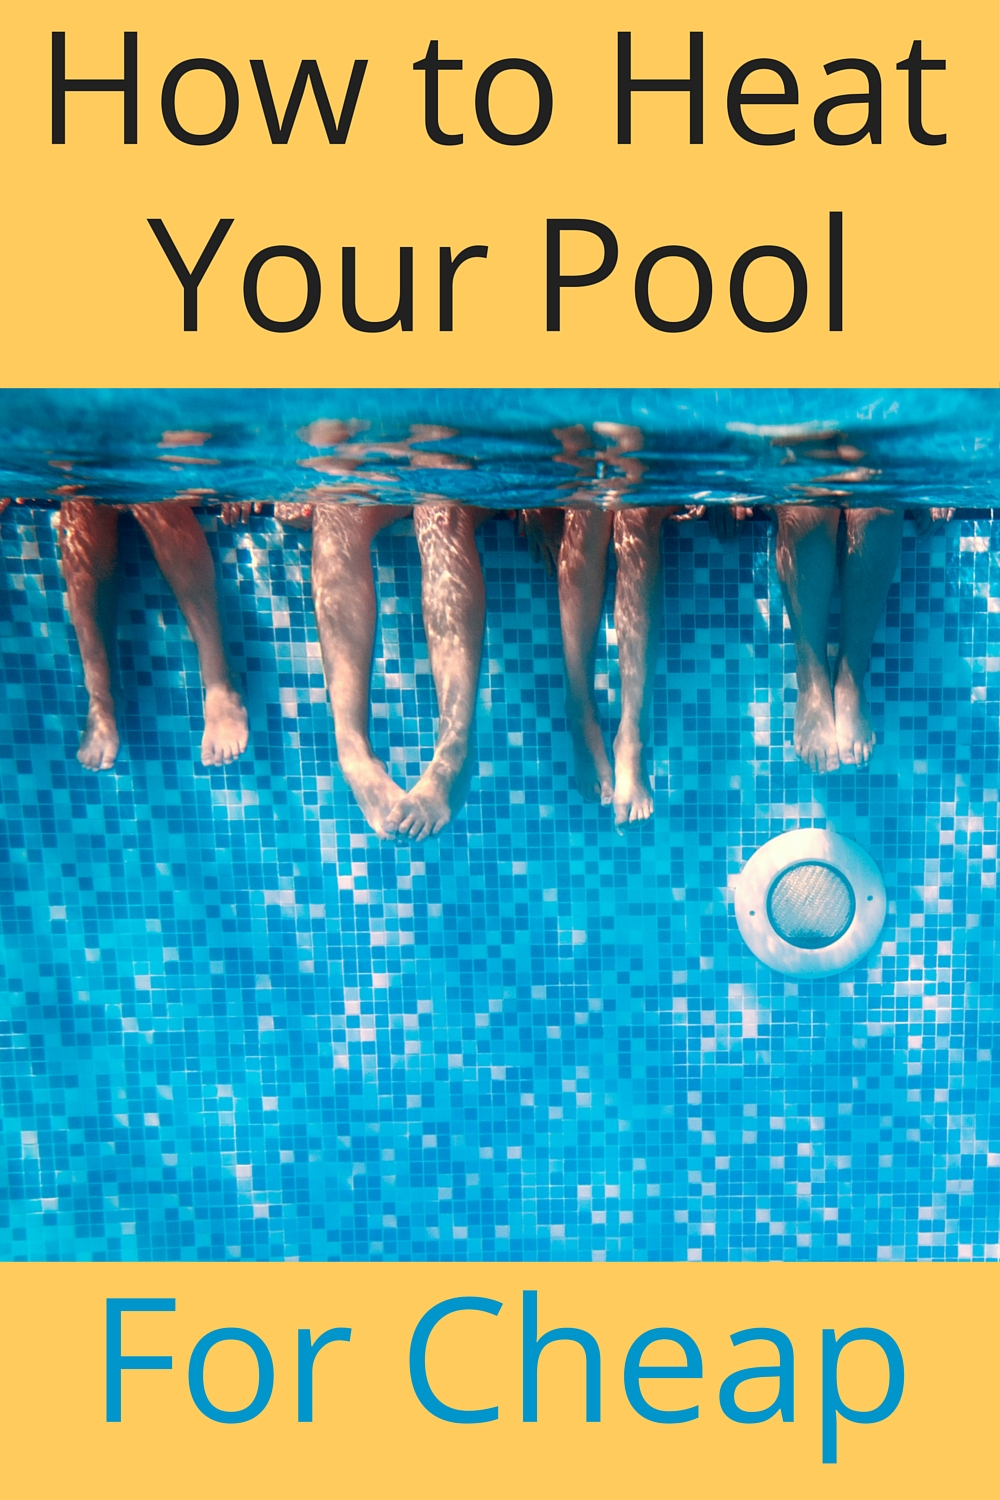 How Do You Heat Your Pool For Cheap Readers Weigh In With